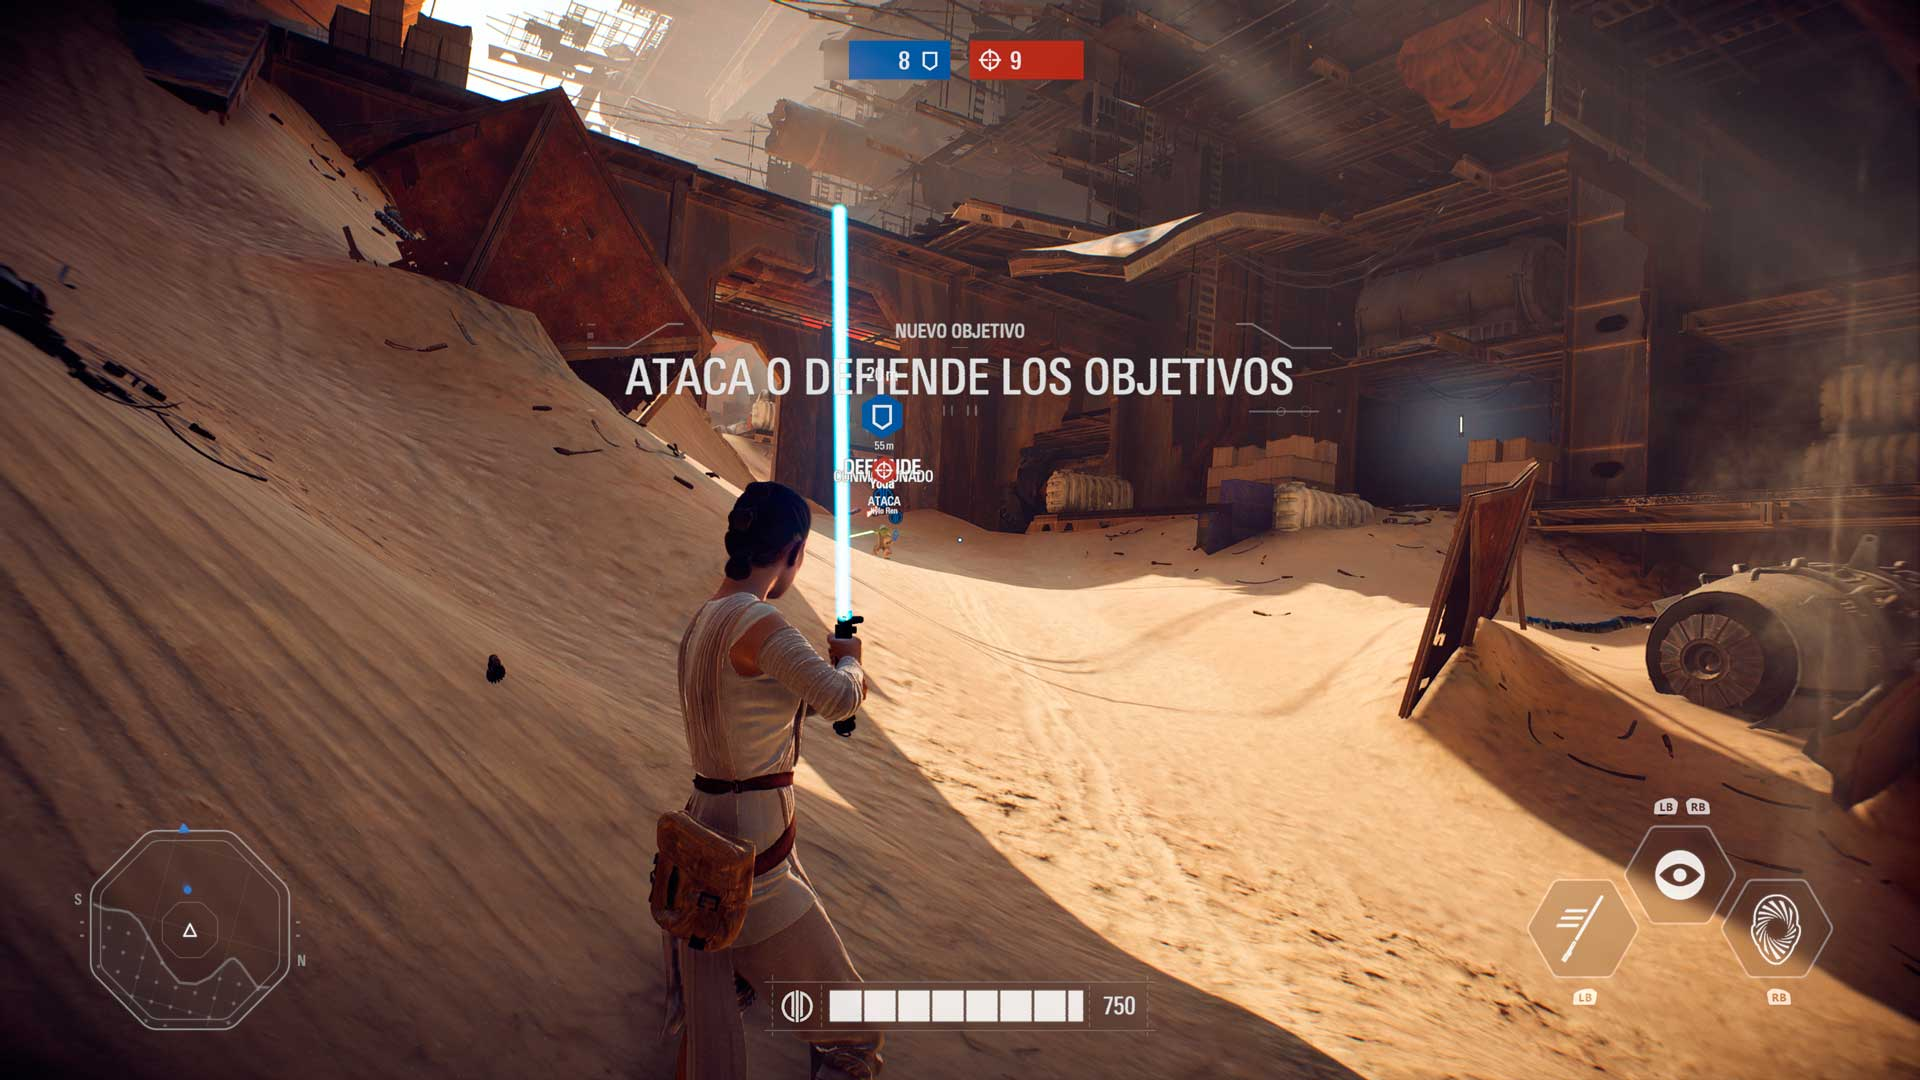 Análisis de Star Wars Battlefront II - Xbox One 4